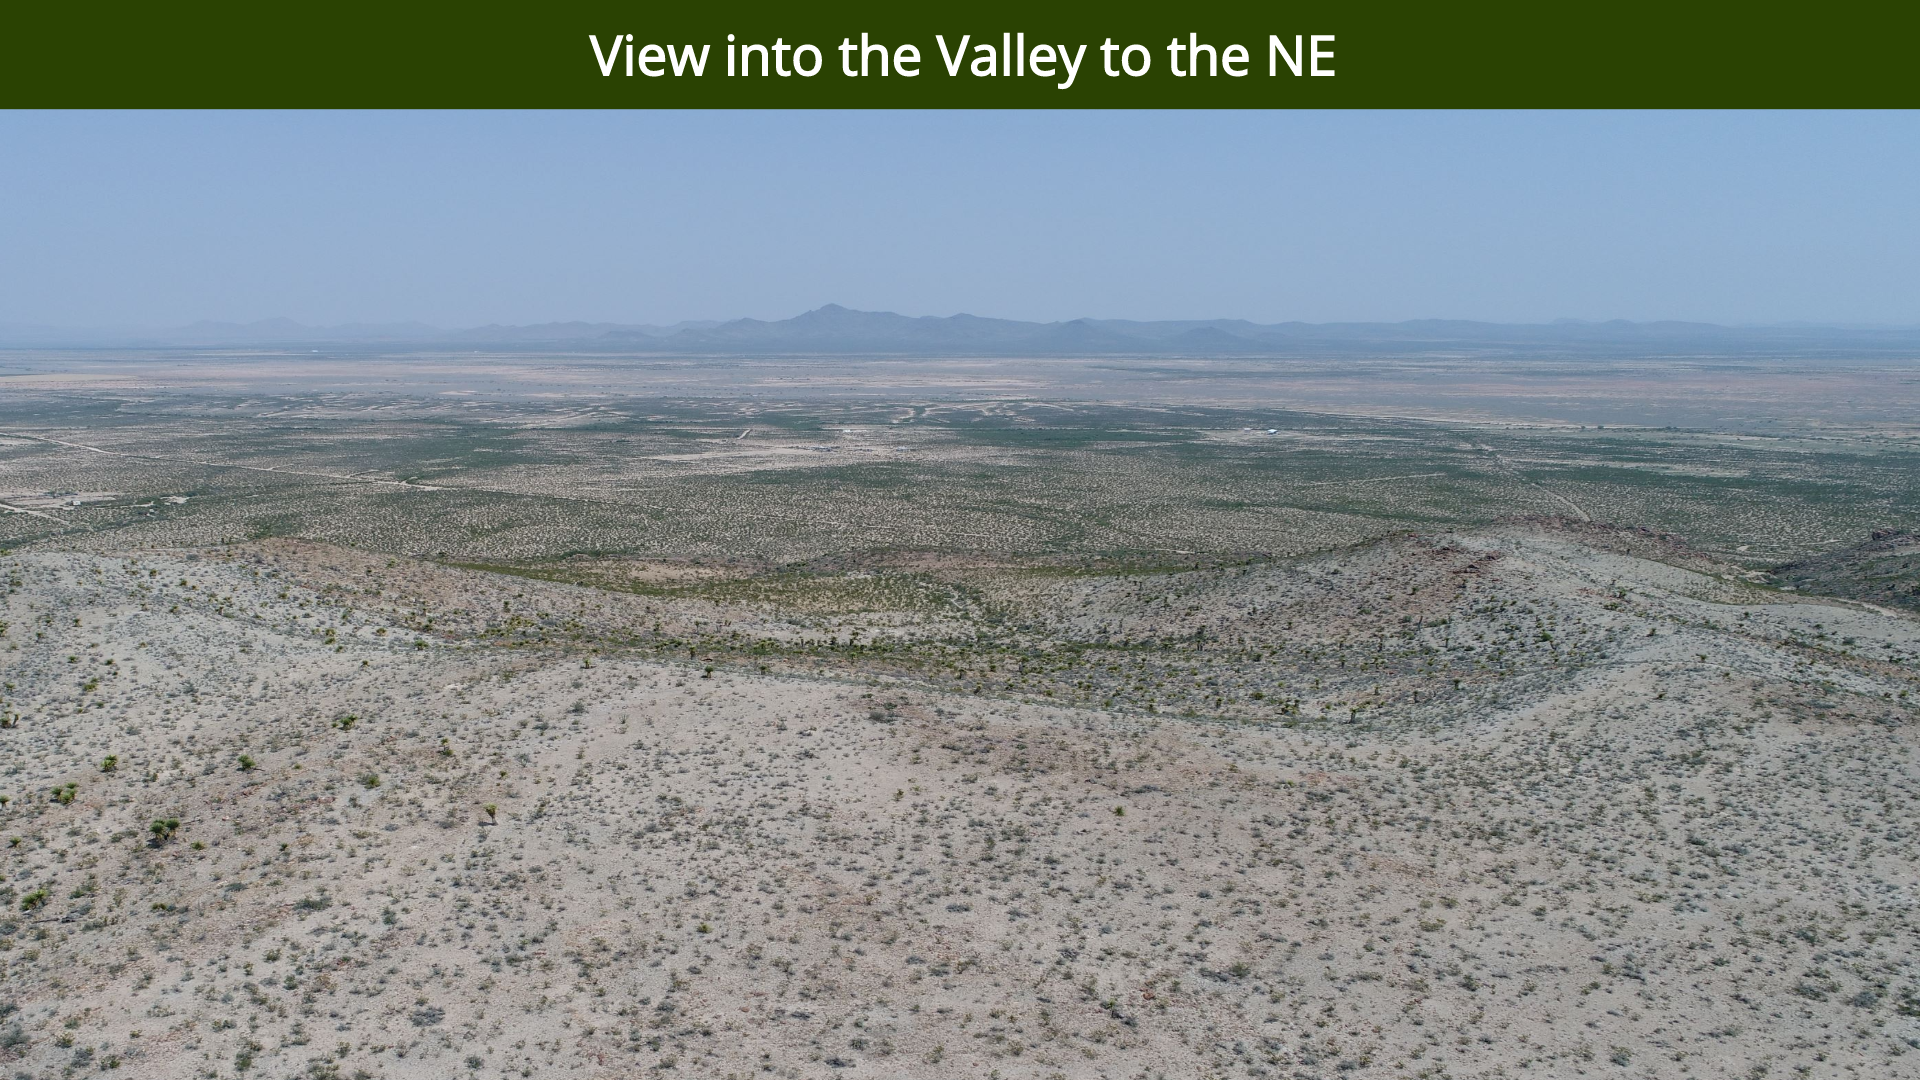 View into the Valley to the NE